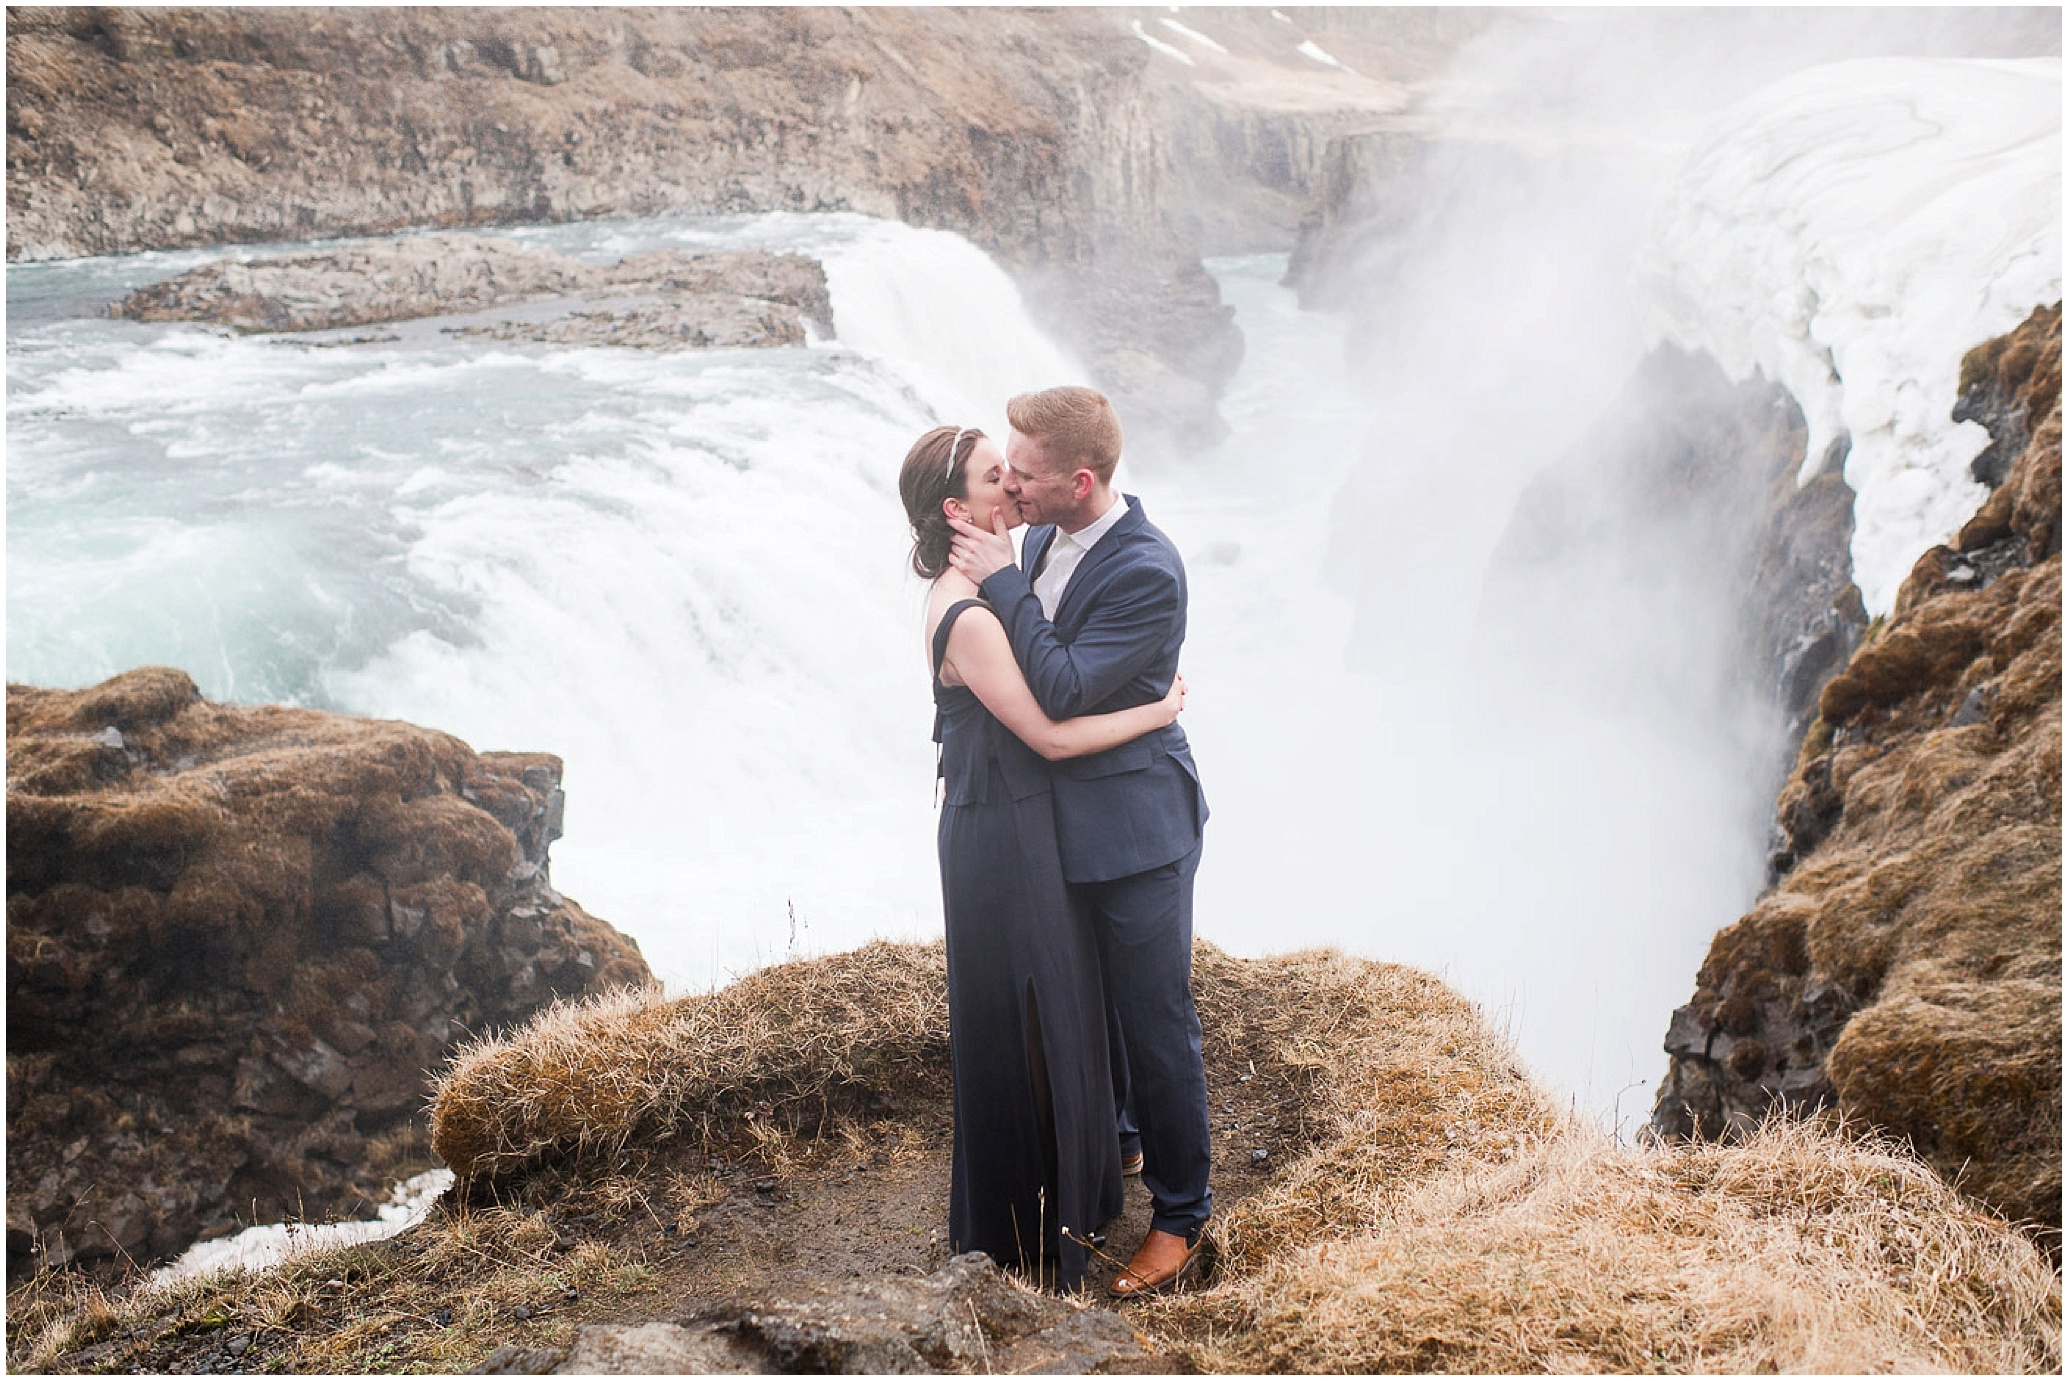 Hannah Leigh Photography Iceland Elopement Photographer_0135.jpg